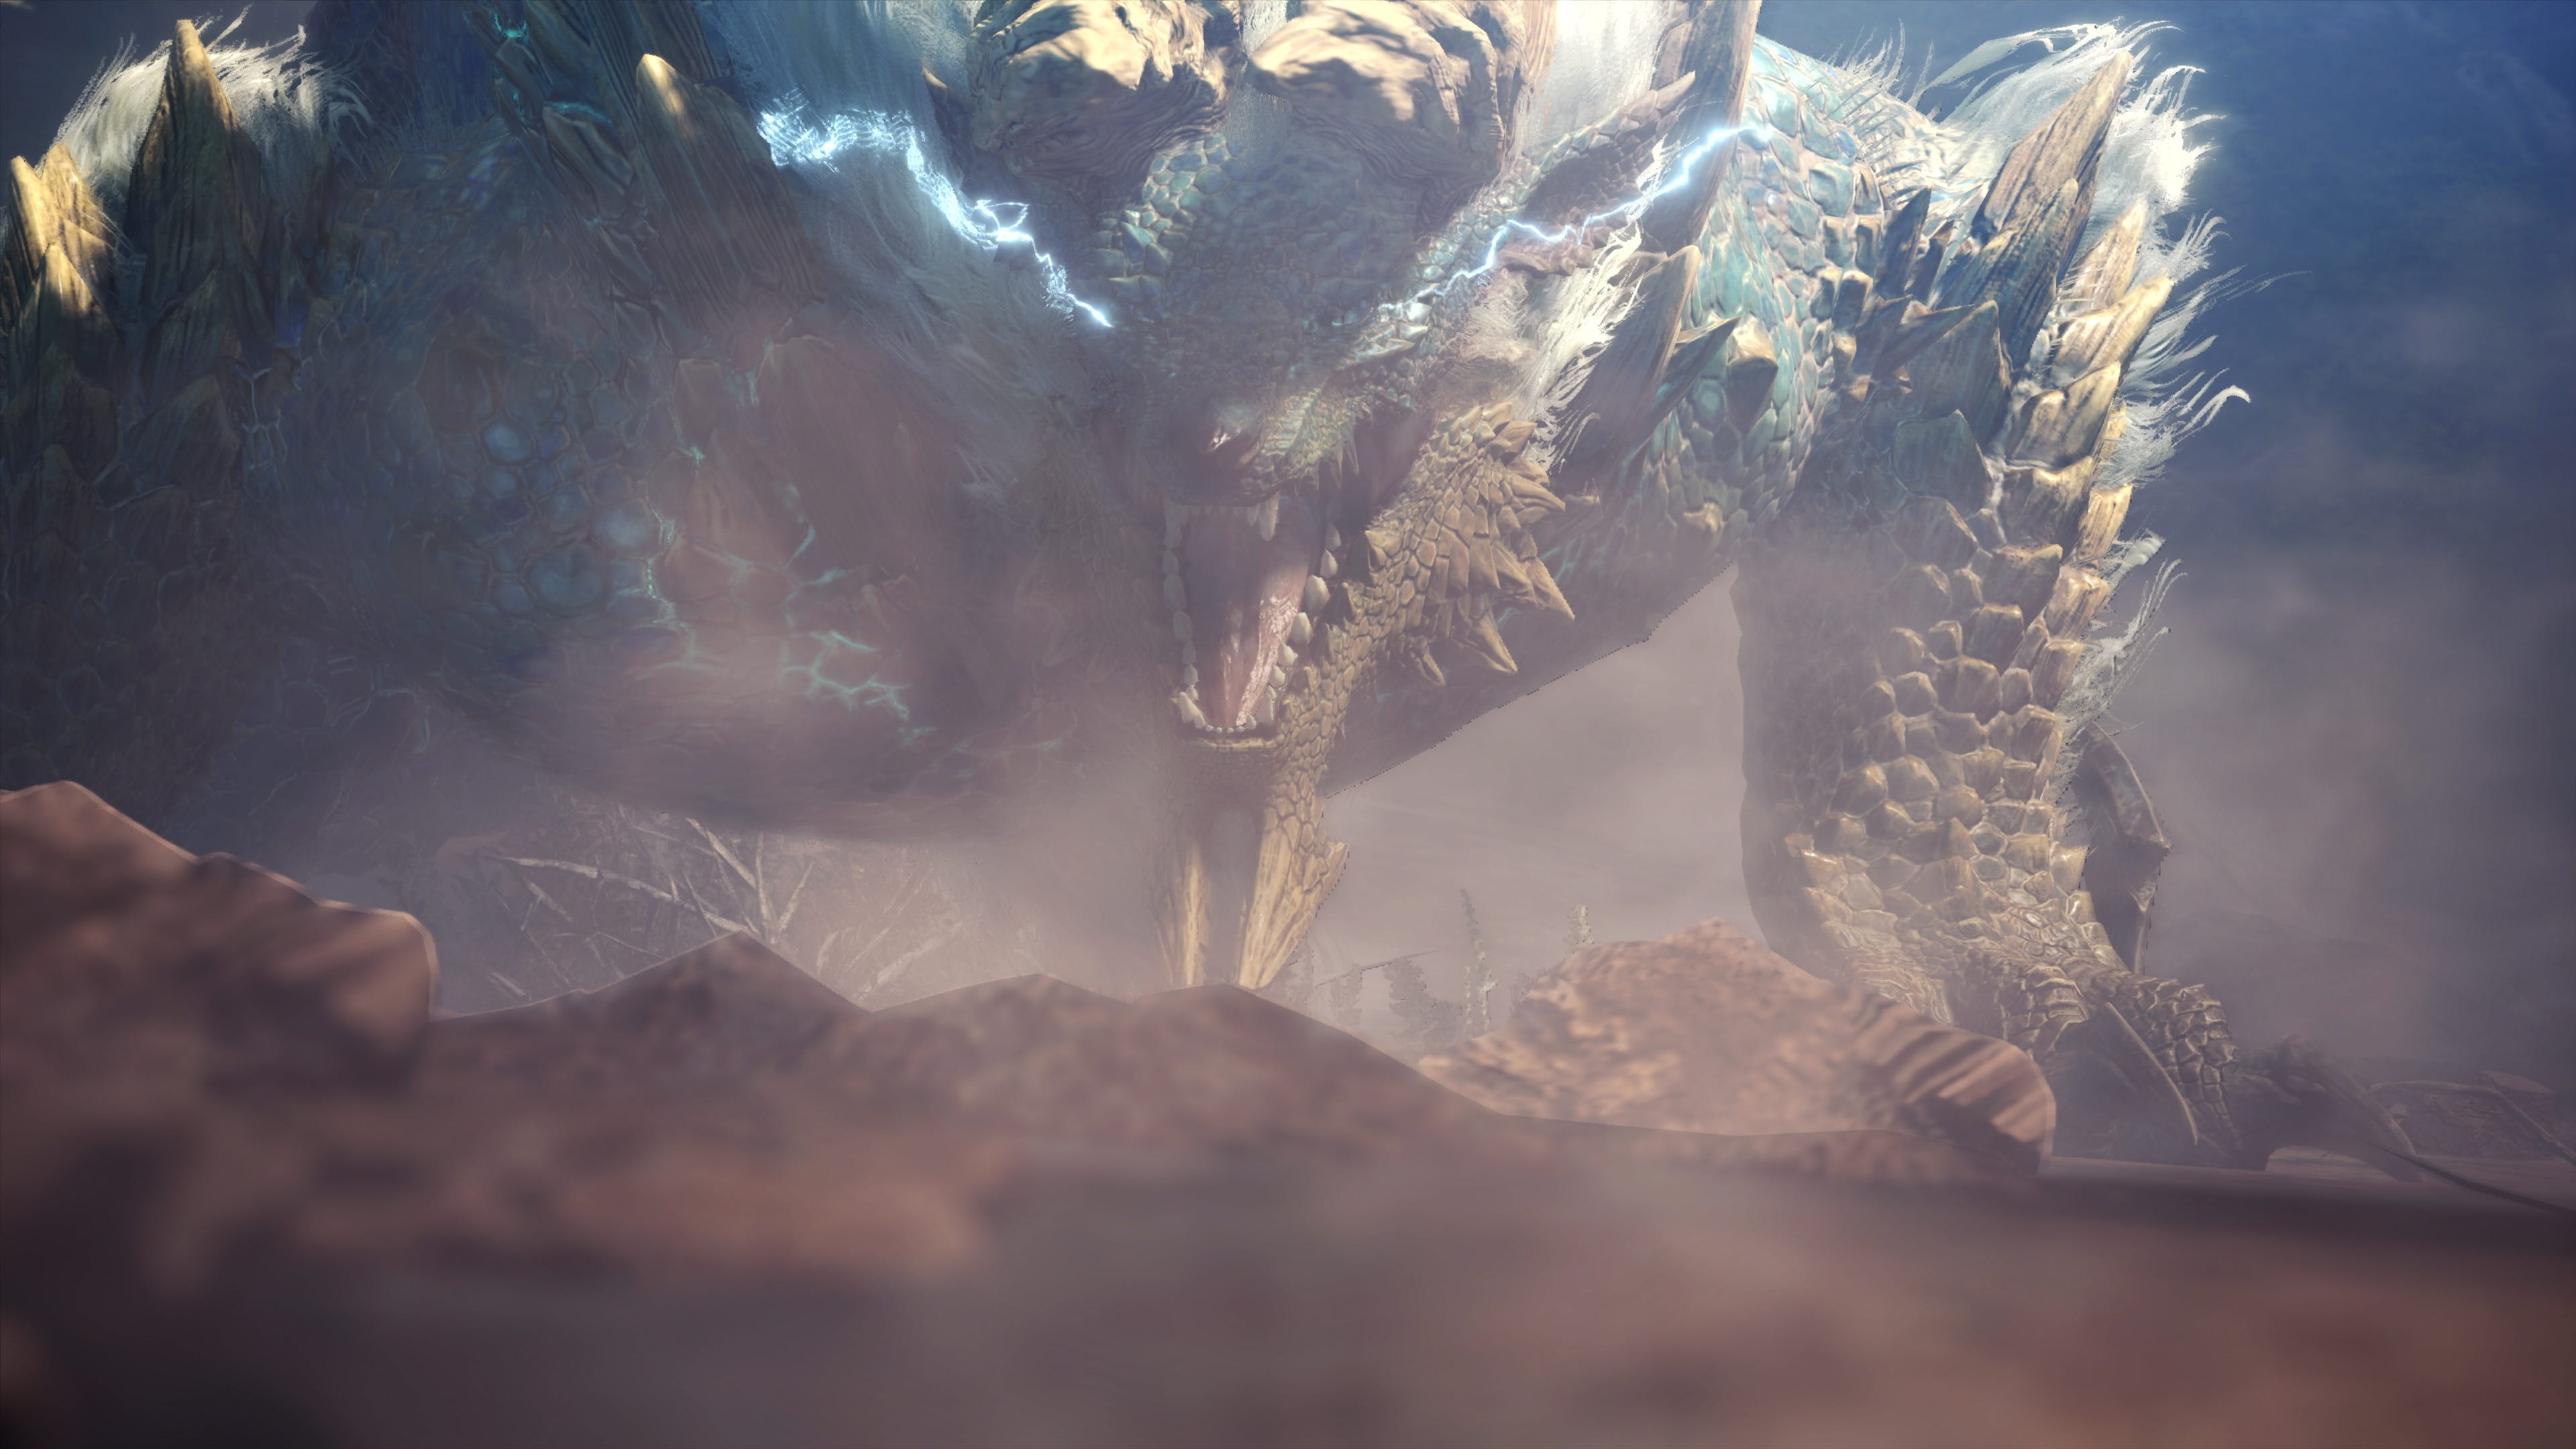 Video trailer: Zinogre back in Monster Hunter World Iceborne | Technobubble